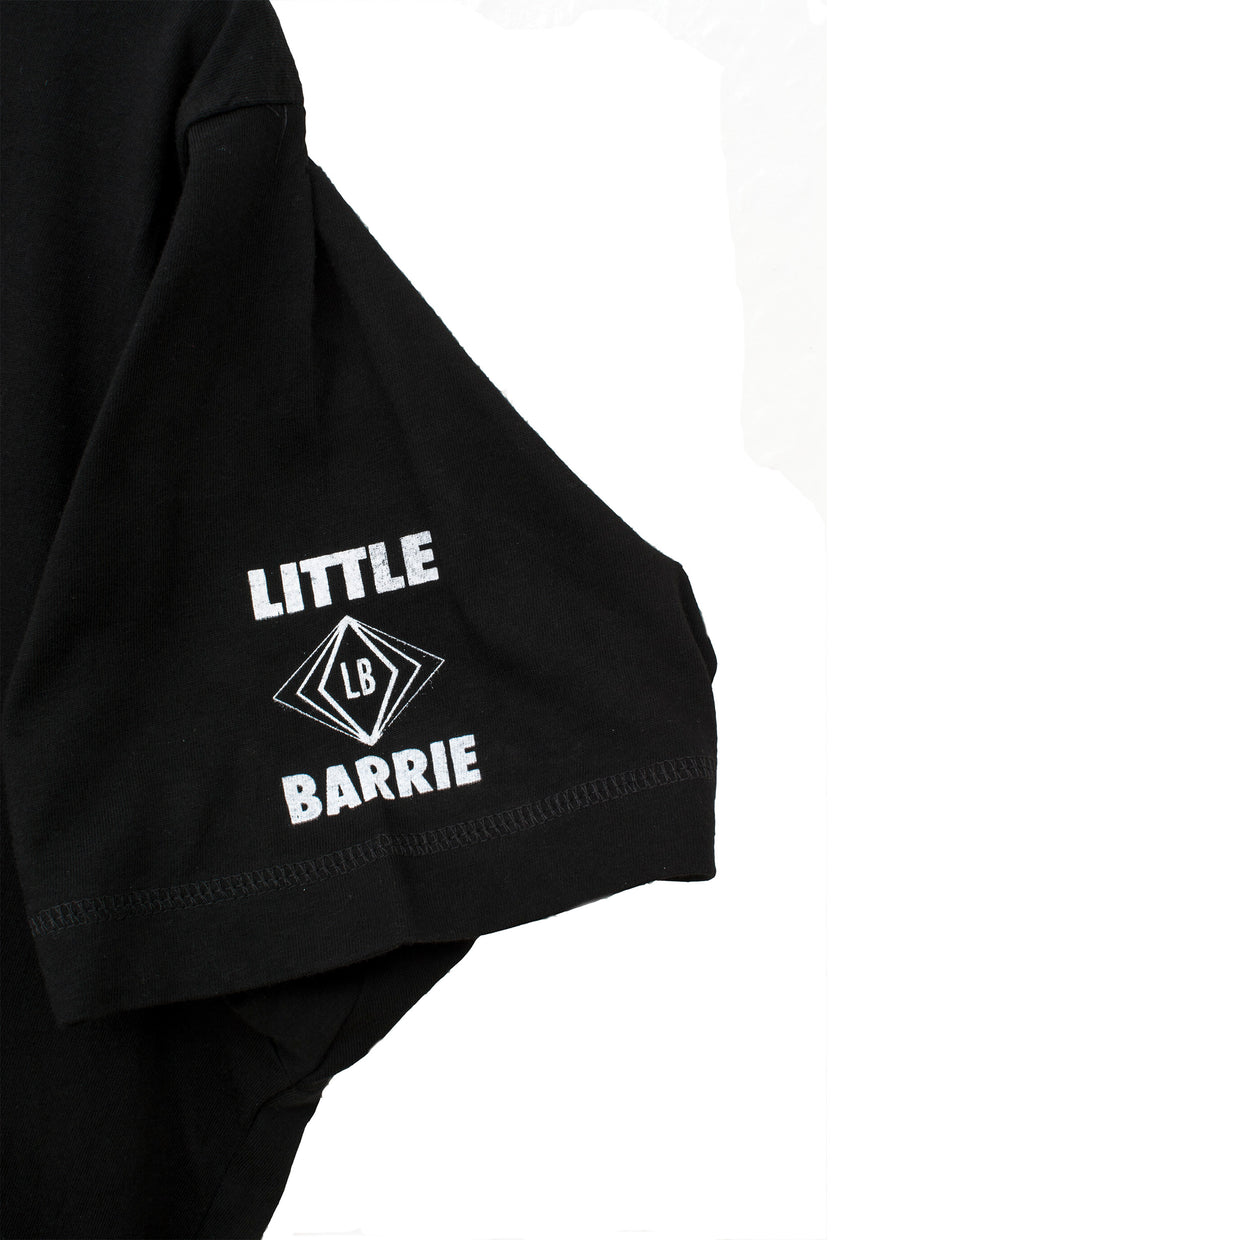 LITTLE BARRIE Collaboration: Ray Gun T-Shirt LIMITED